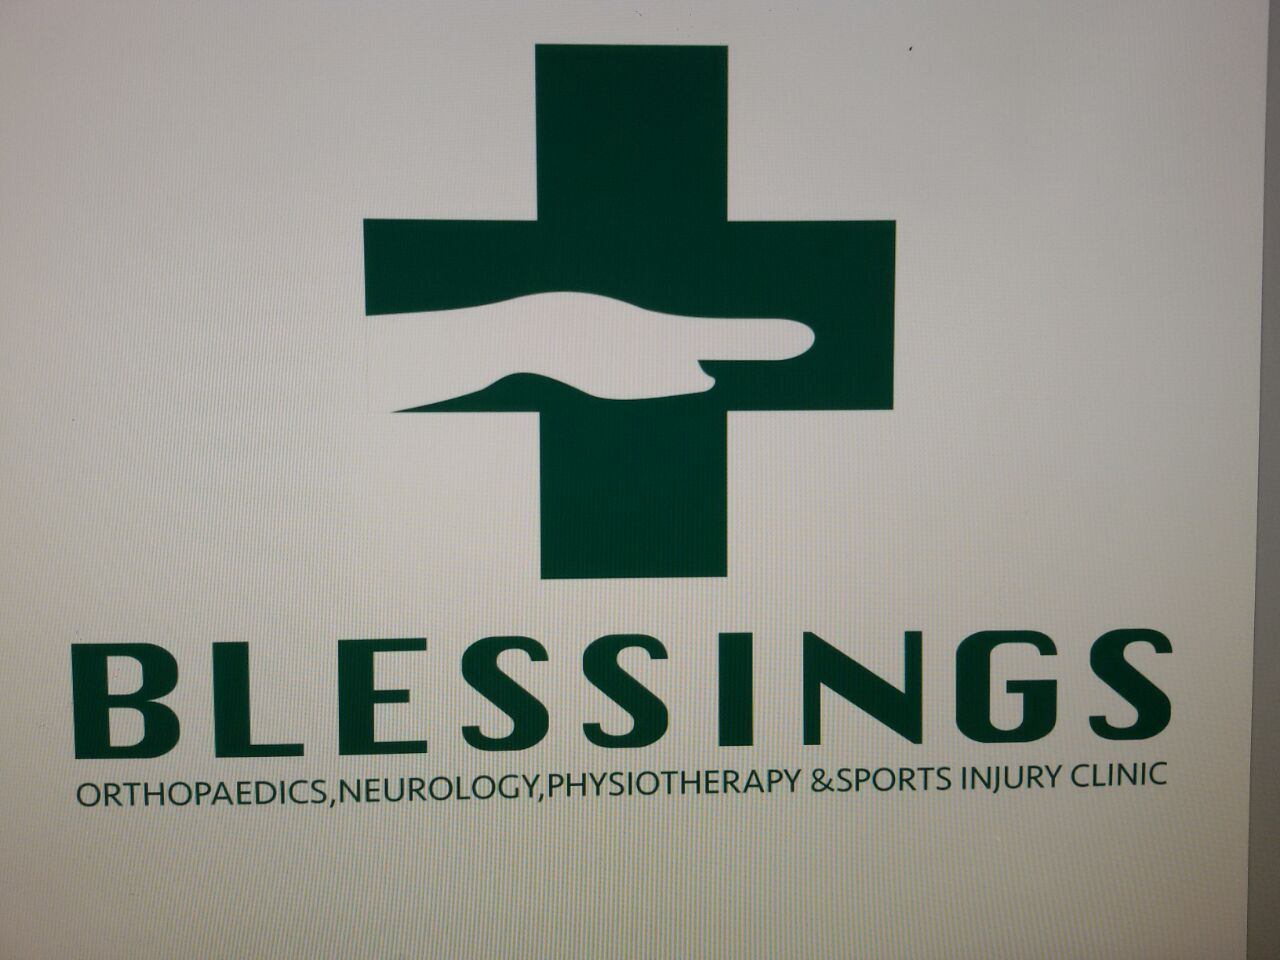 Blessings Sports Injury and Chiropractor Clinic - logo